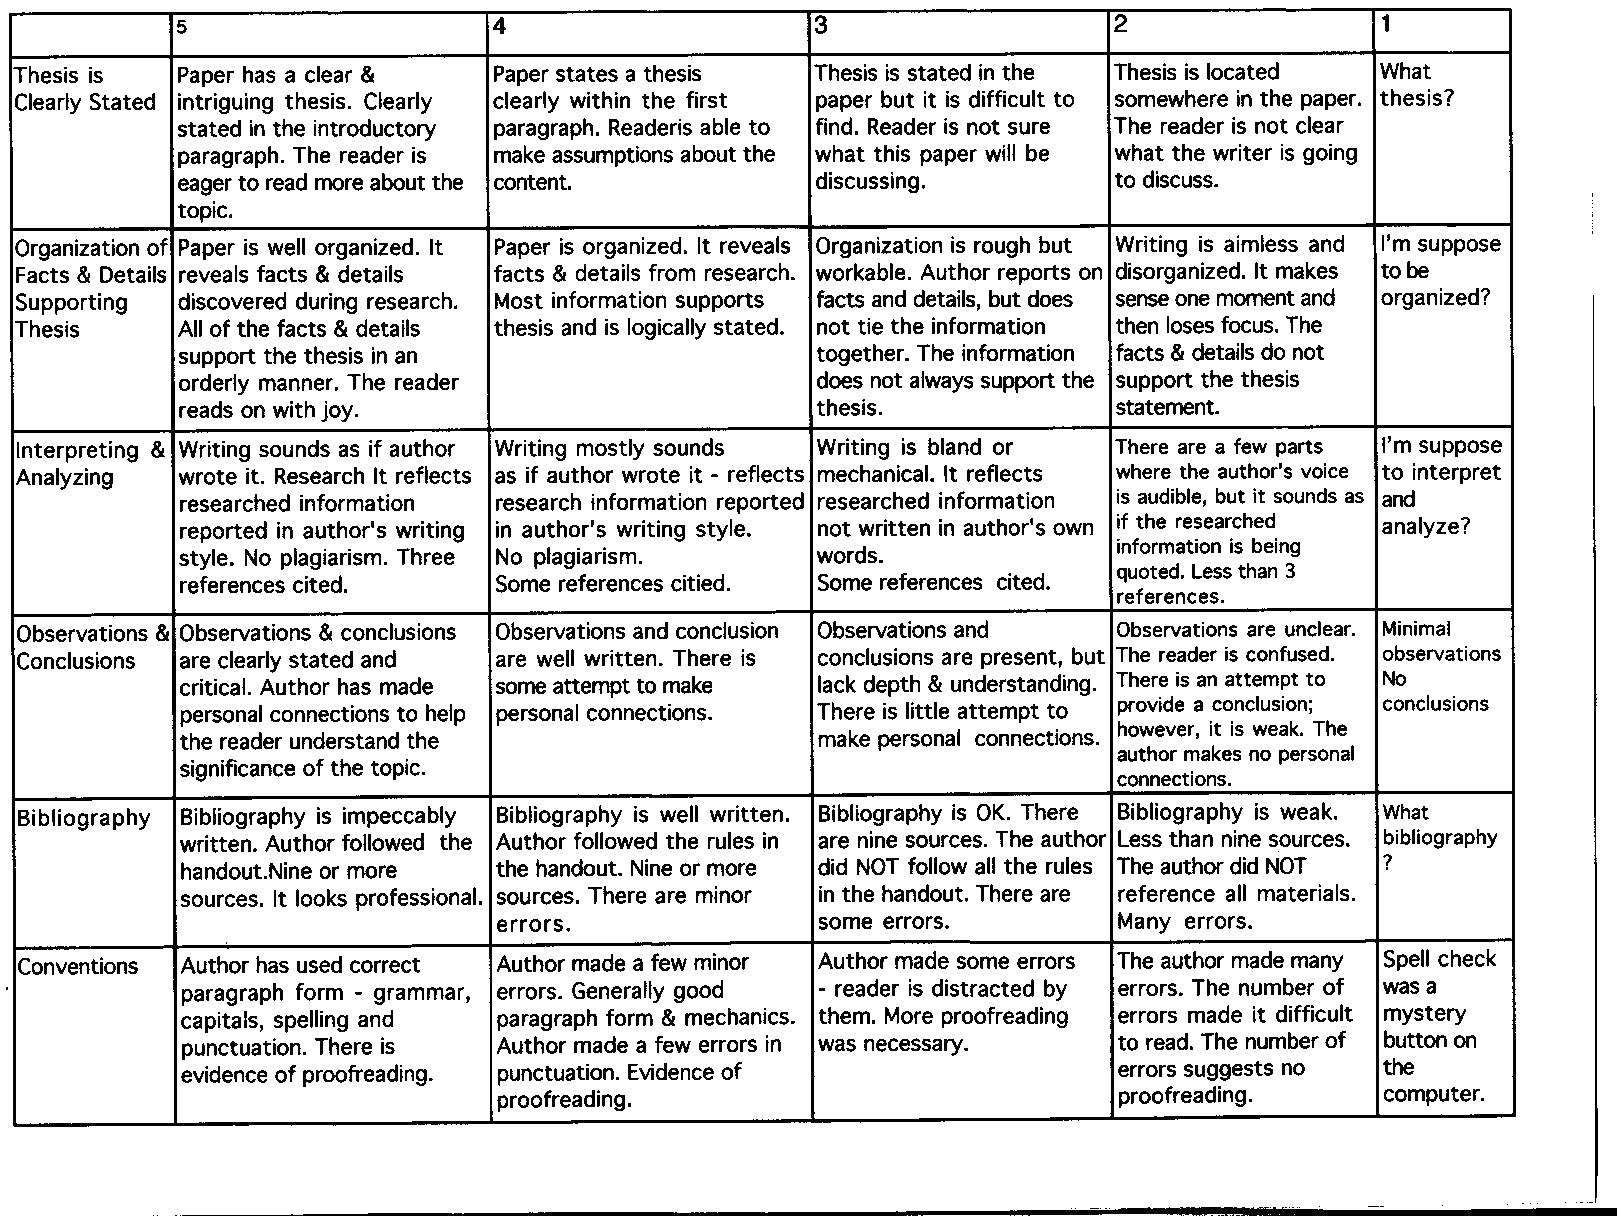 Using Rubrics to Promote Thinking and Learning